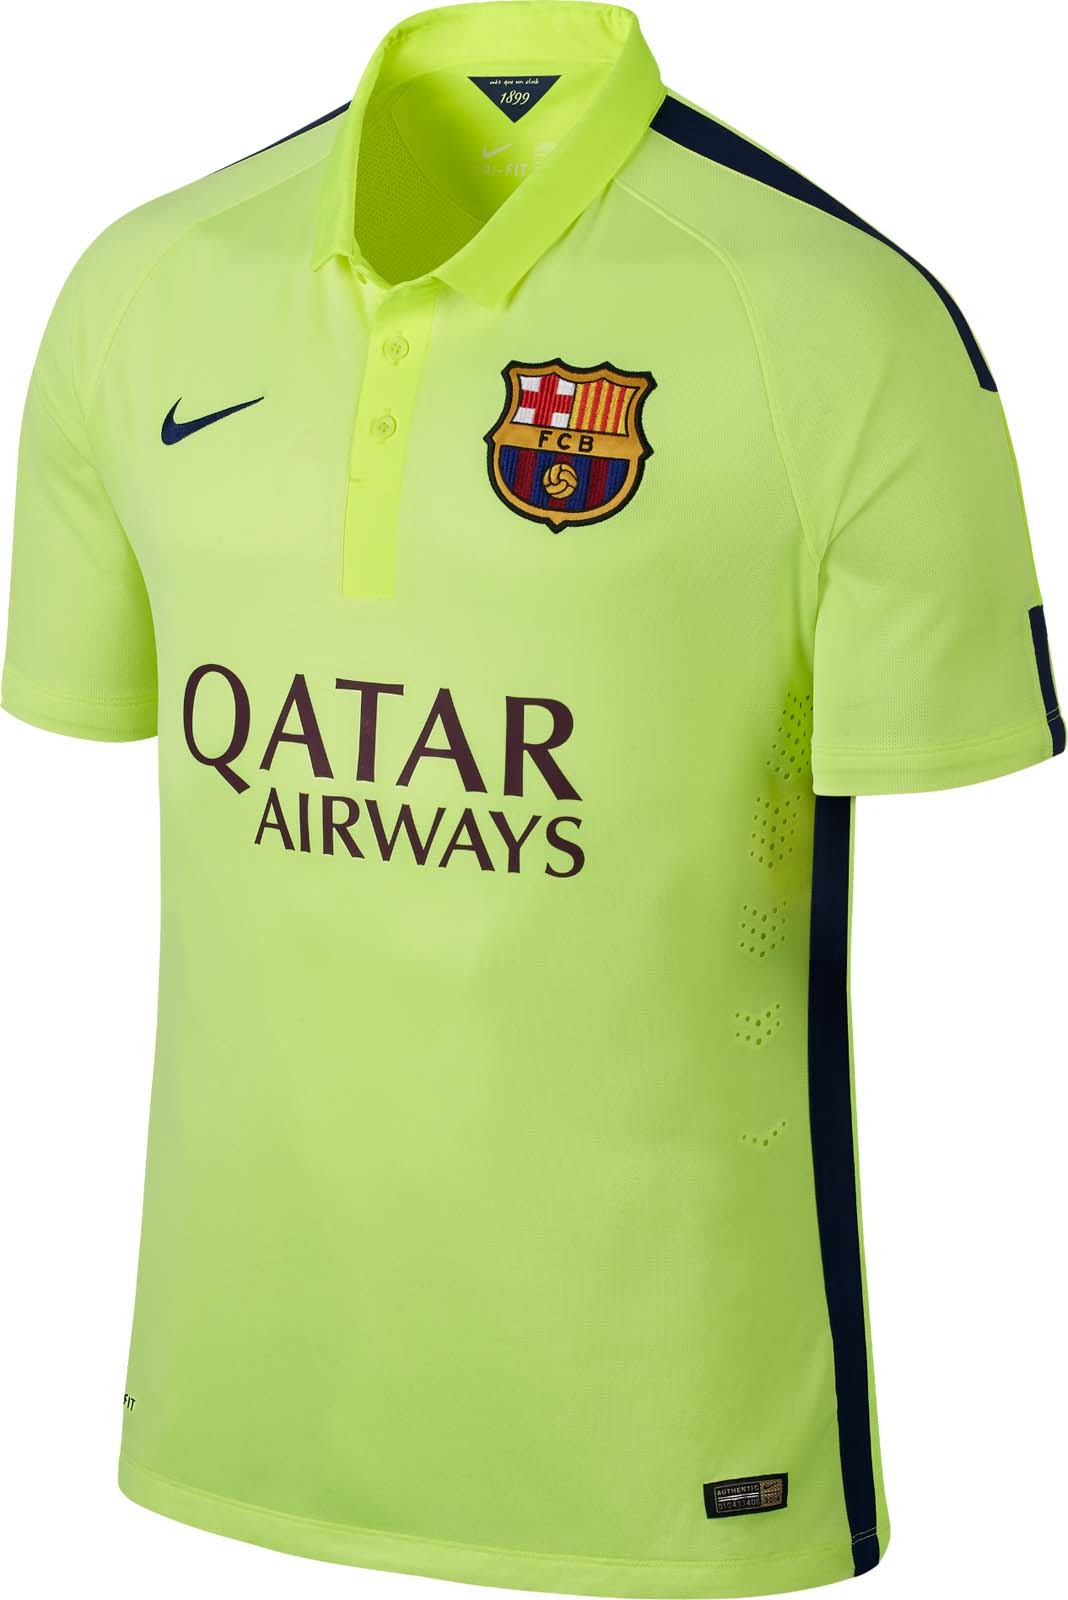 barcelona-14-15-third-kit+(1).jpg